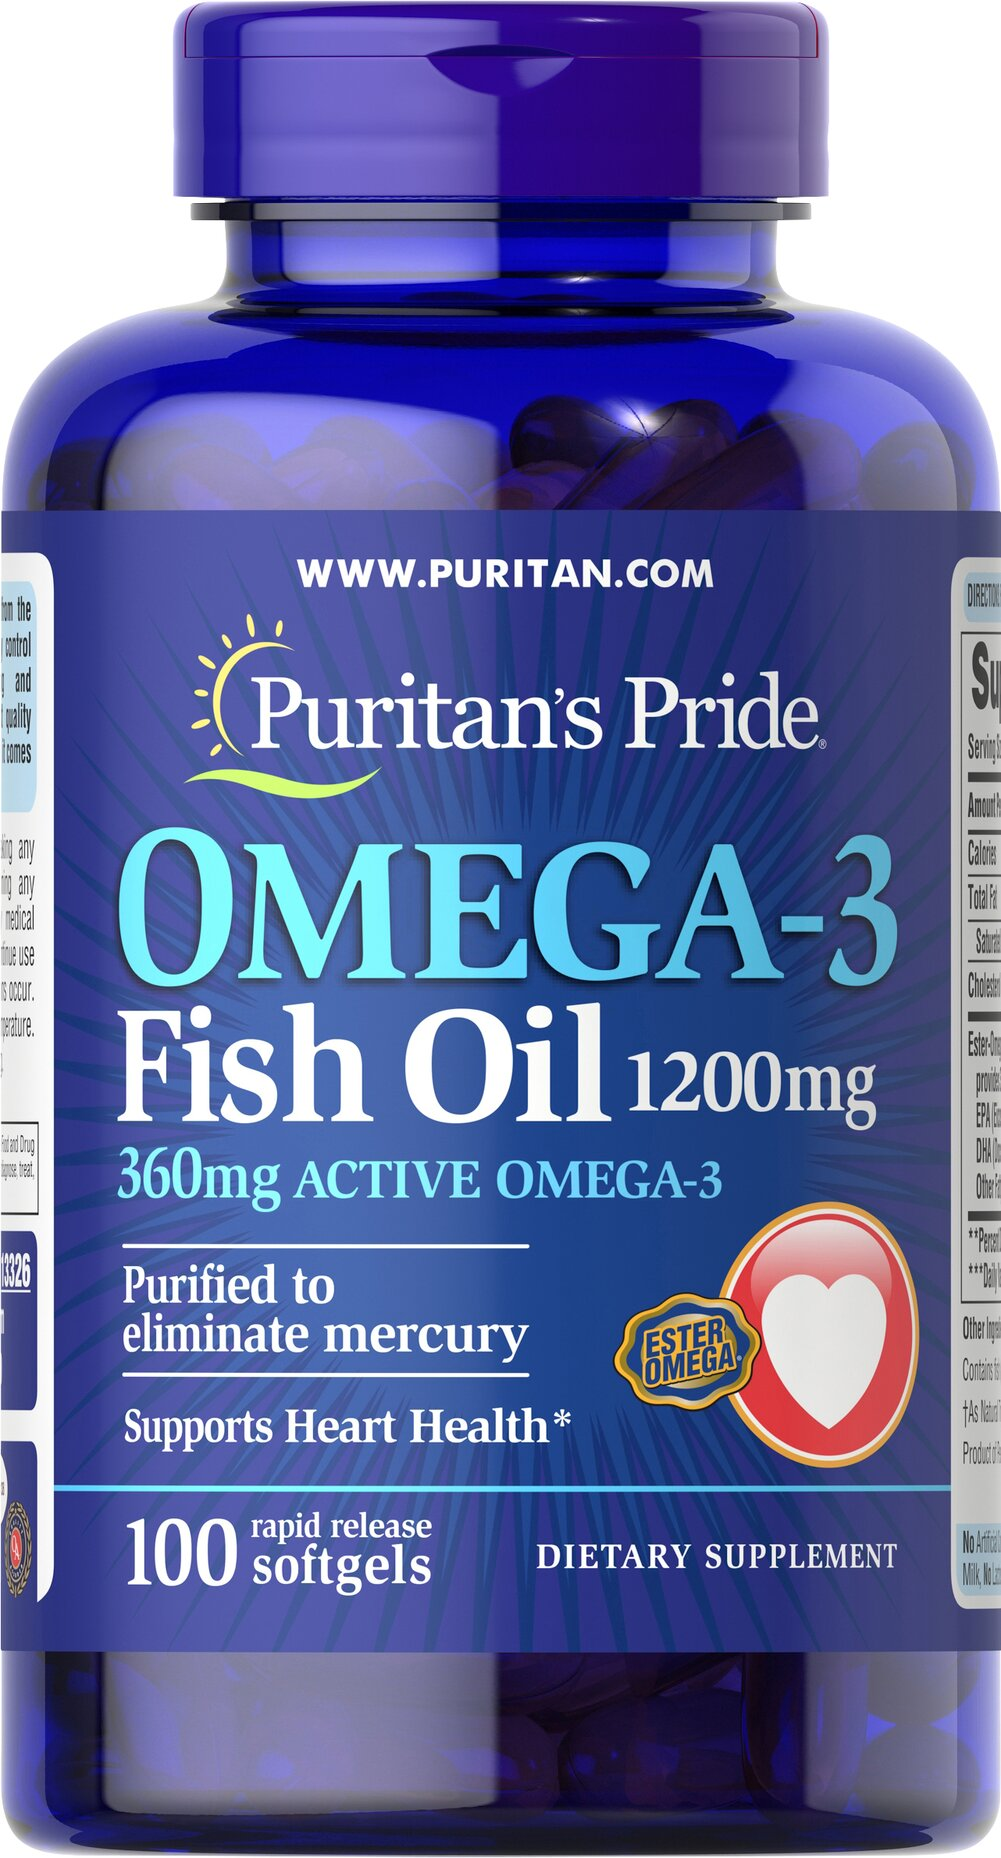 omega 3 fish oil 1200 mg 360 mg active omega 3 100 softgels omega 3 supplements supplements. Black Bedroom Furniture Sets. Home Design Ideas